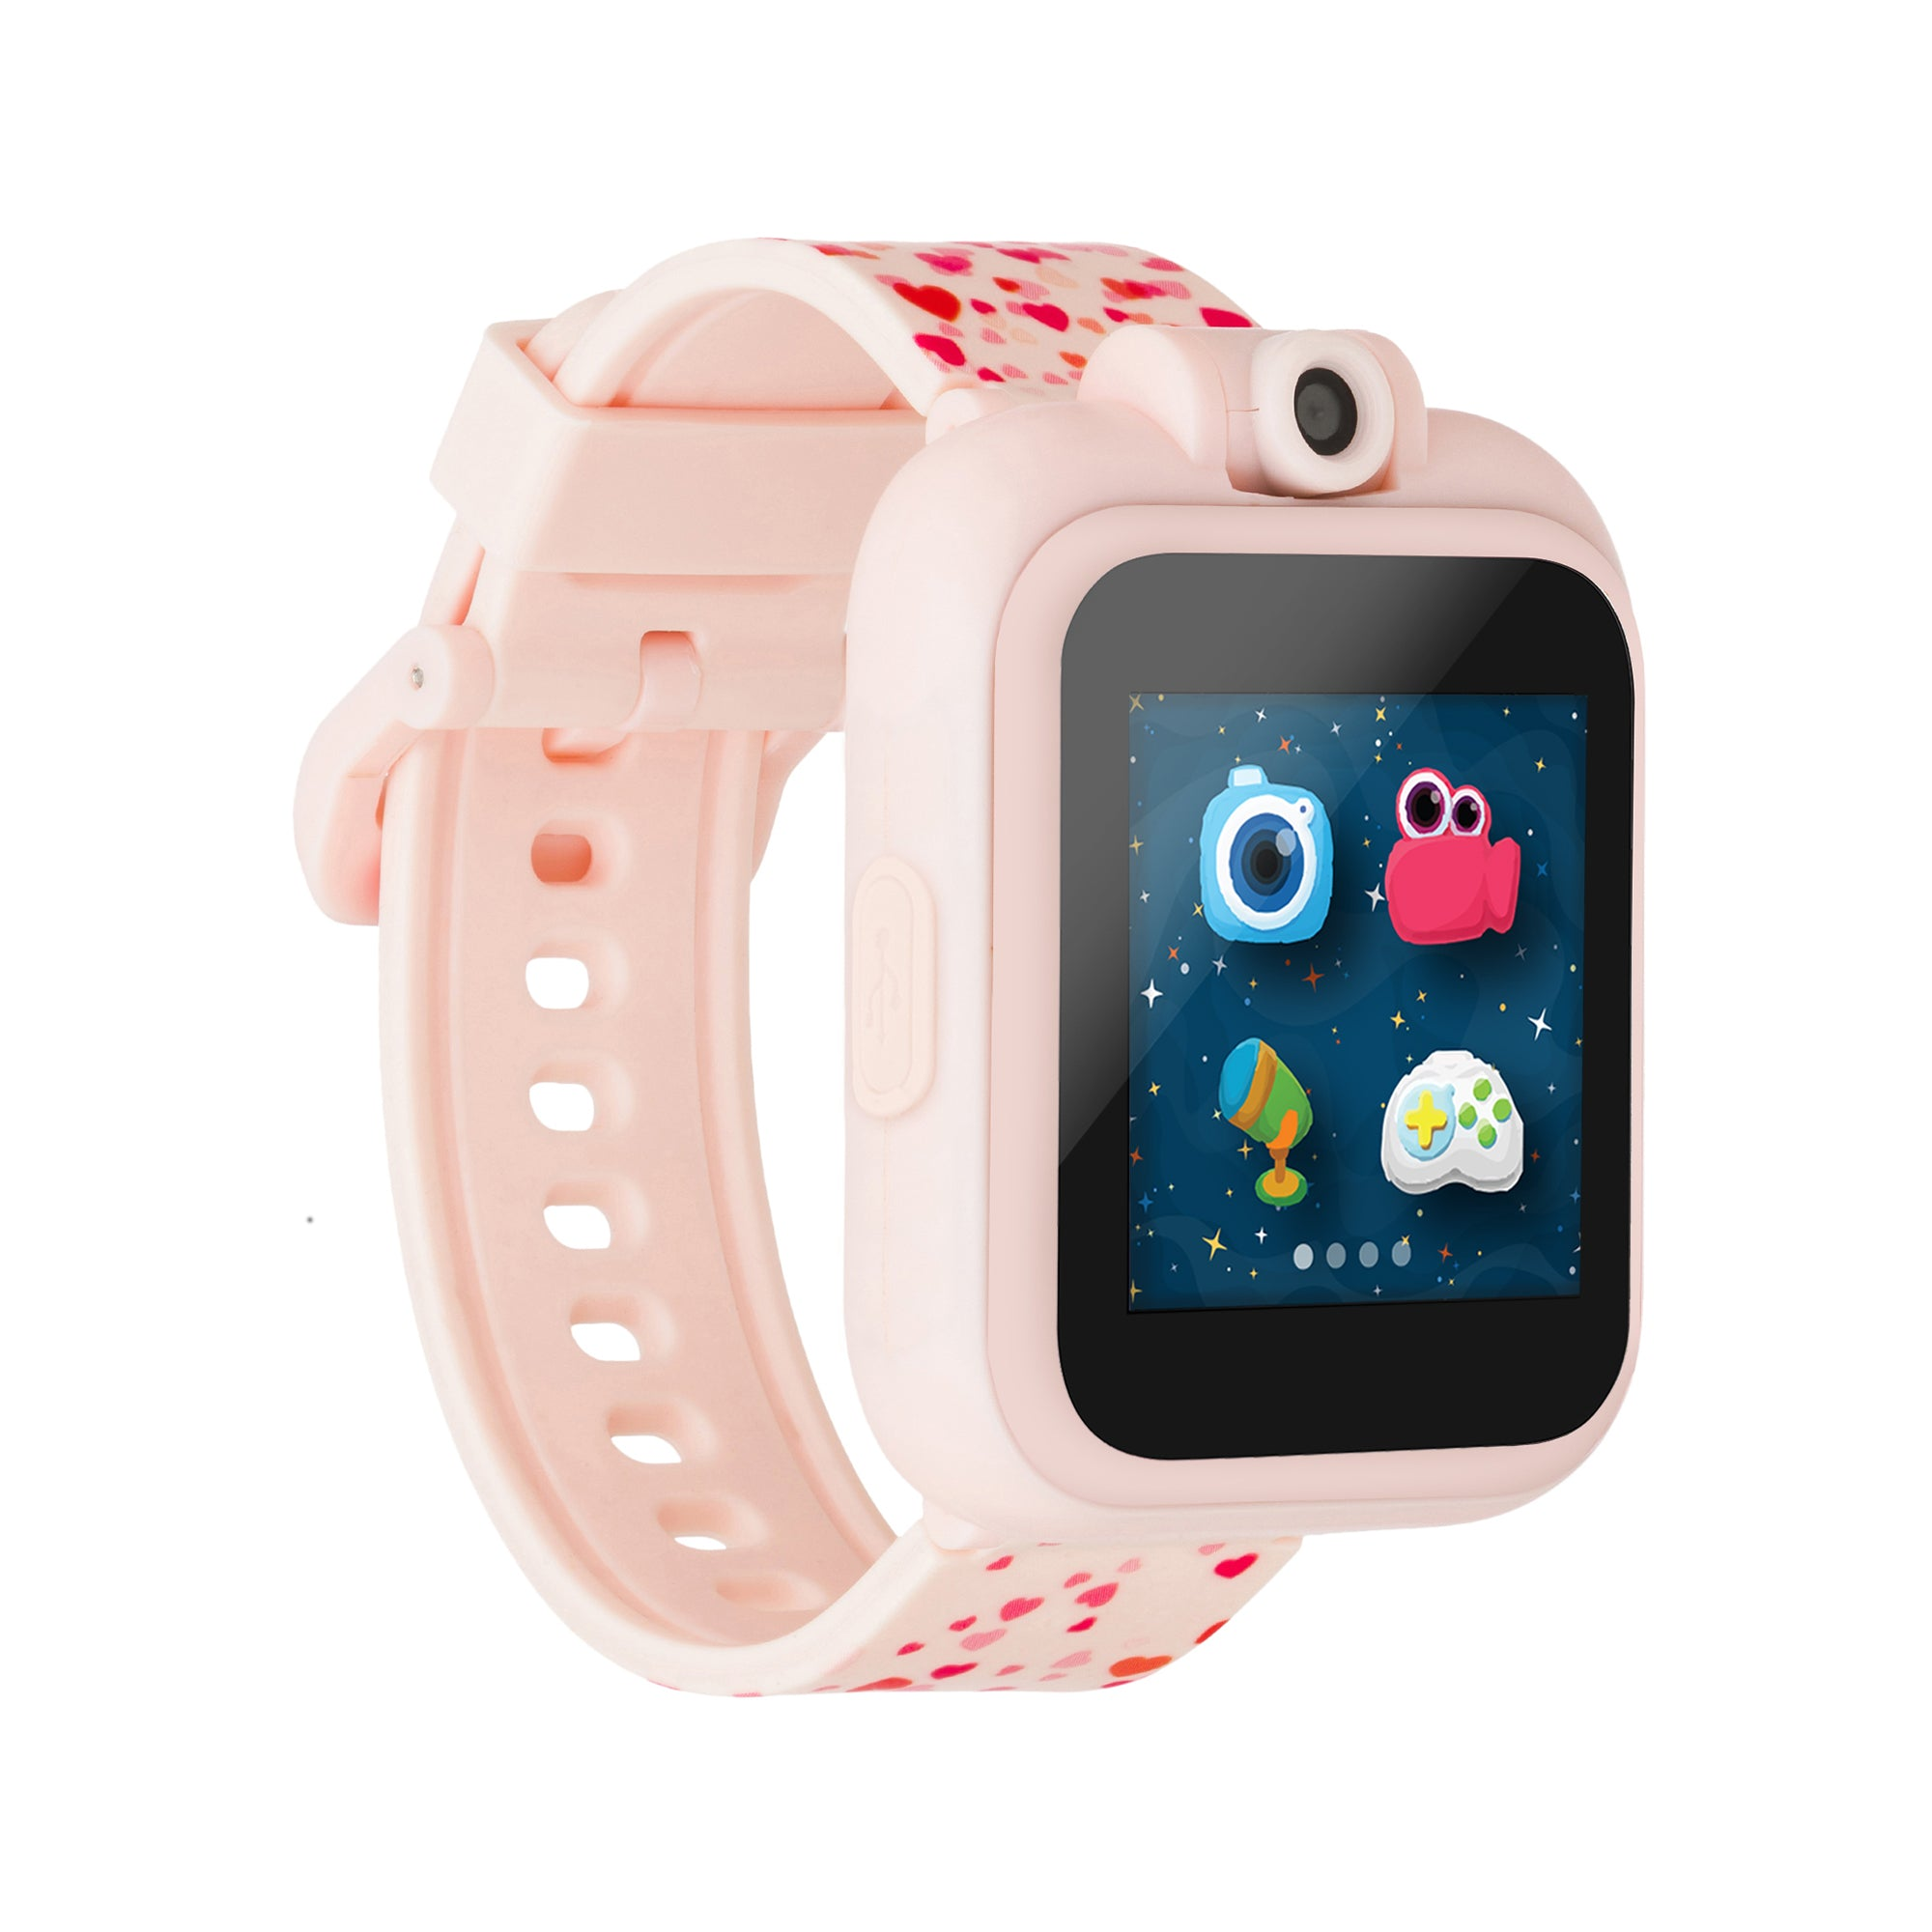 PlayZoom Smartwatch For Kids: Blush with Hearts Print